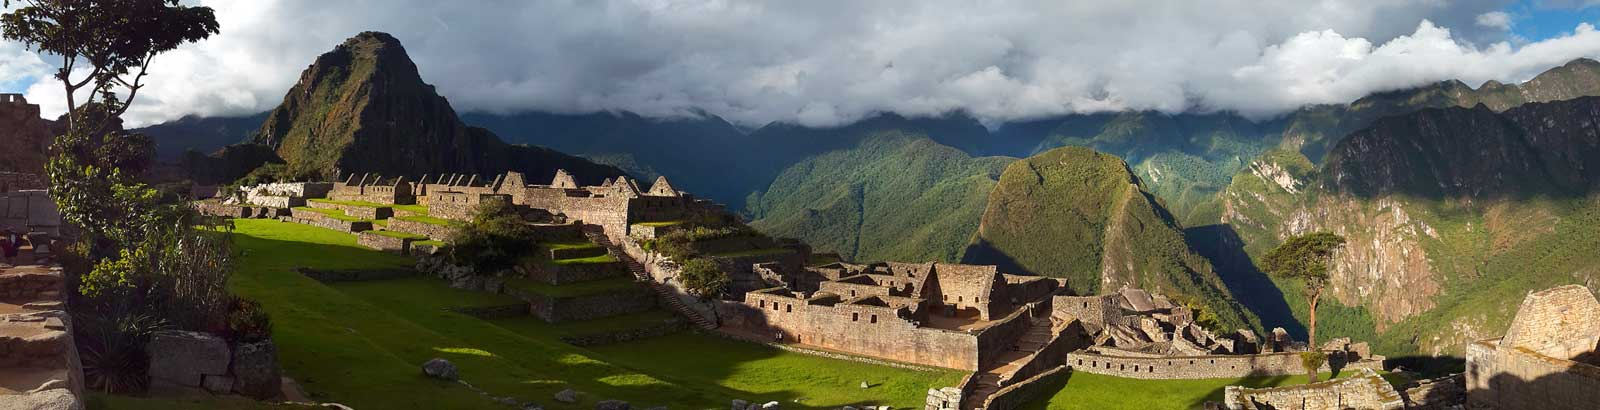 Panoramic view of Machu Picchu ruins with cloud forest in the background